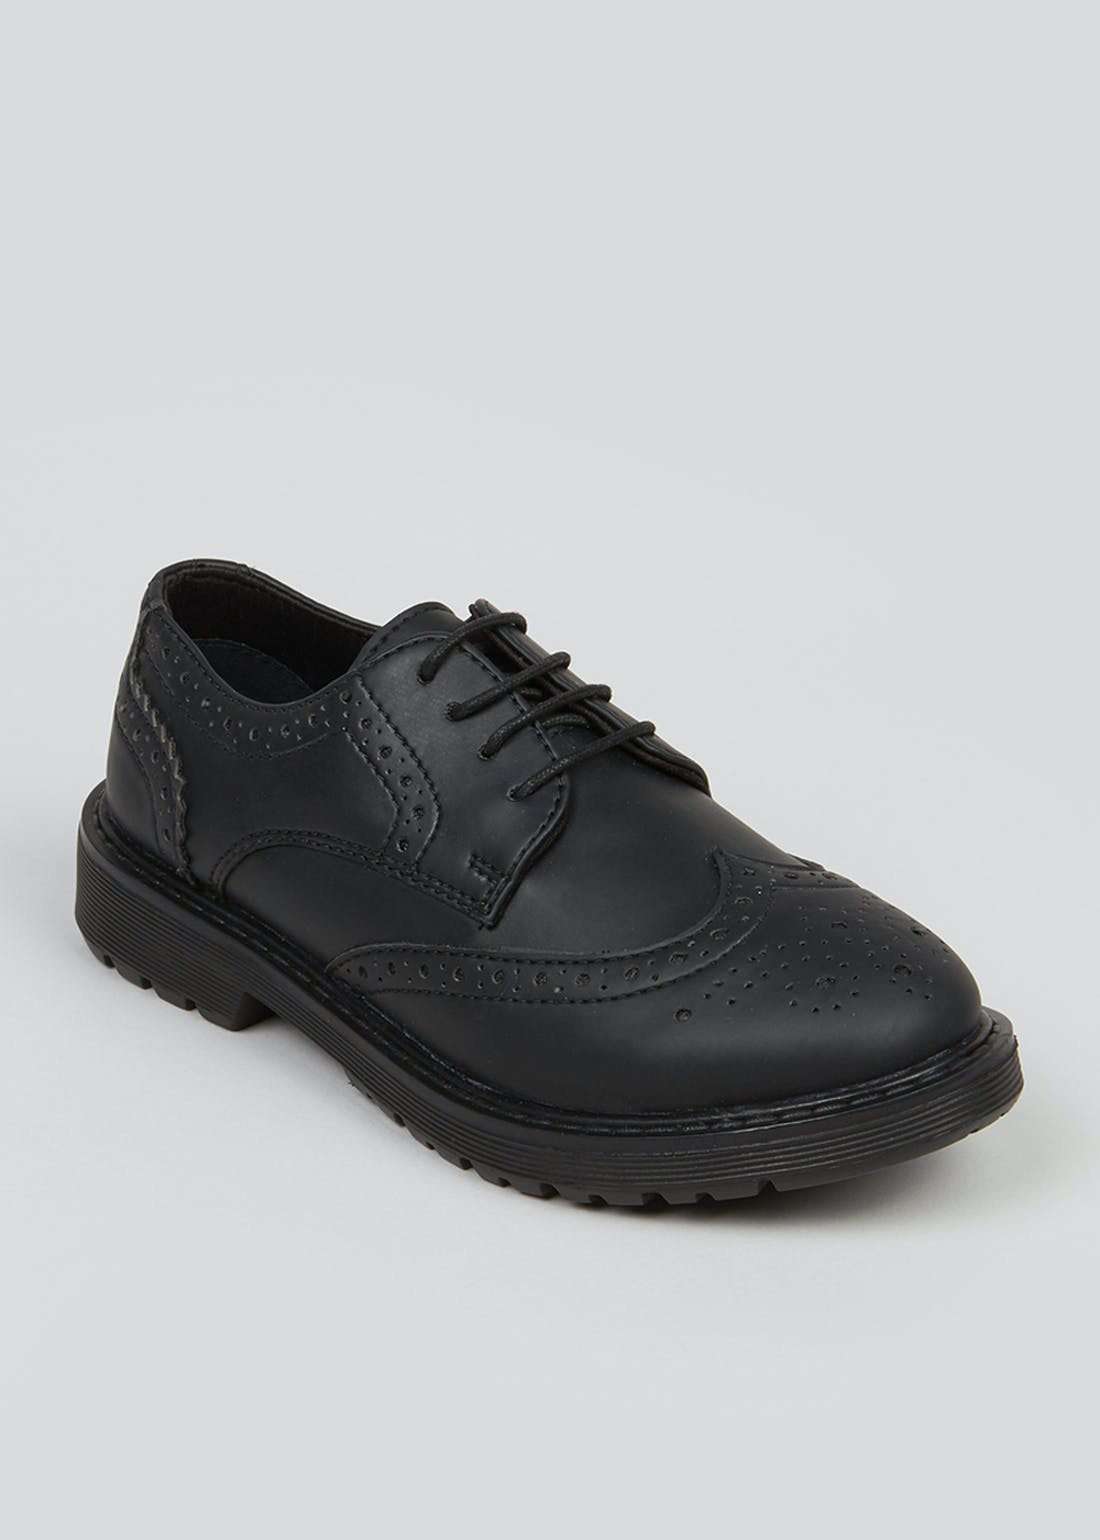 Boys Black Brogue School Shoes (Older 2-6)